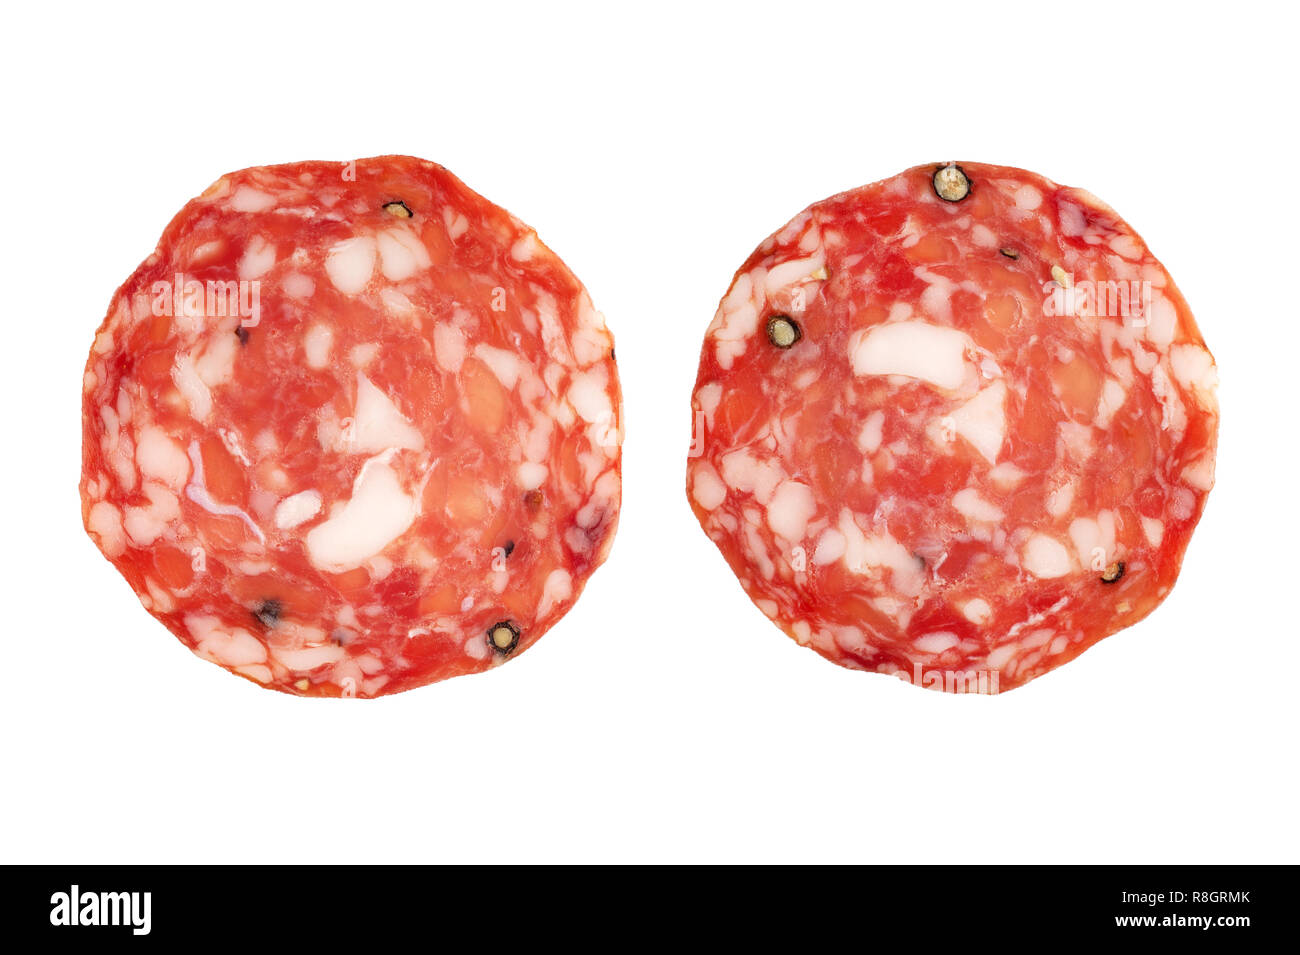 Spicy, dry, thin  sausage slices  isolated. Top view,  horizontal  orientation. - Stock Image